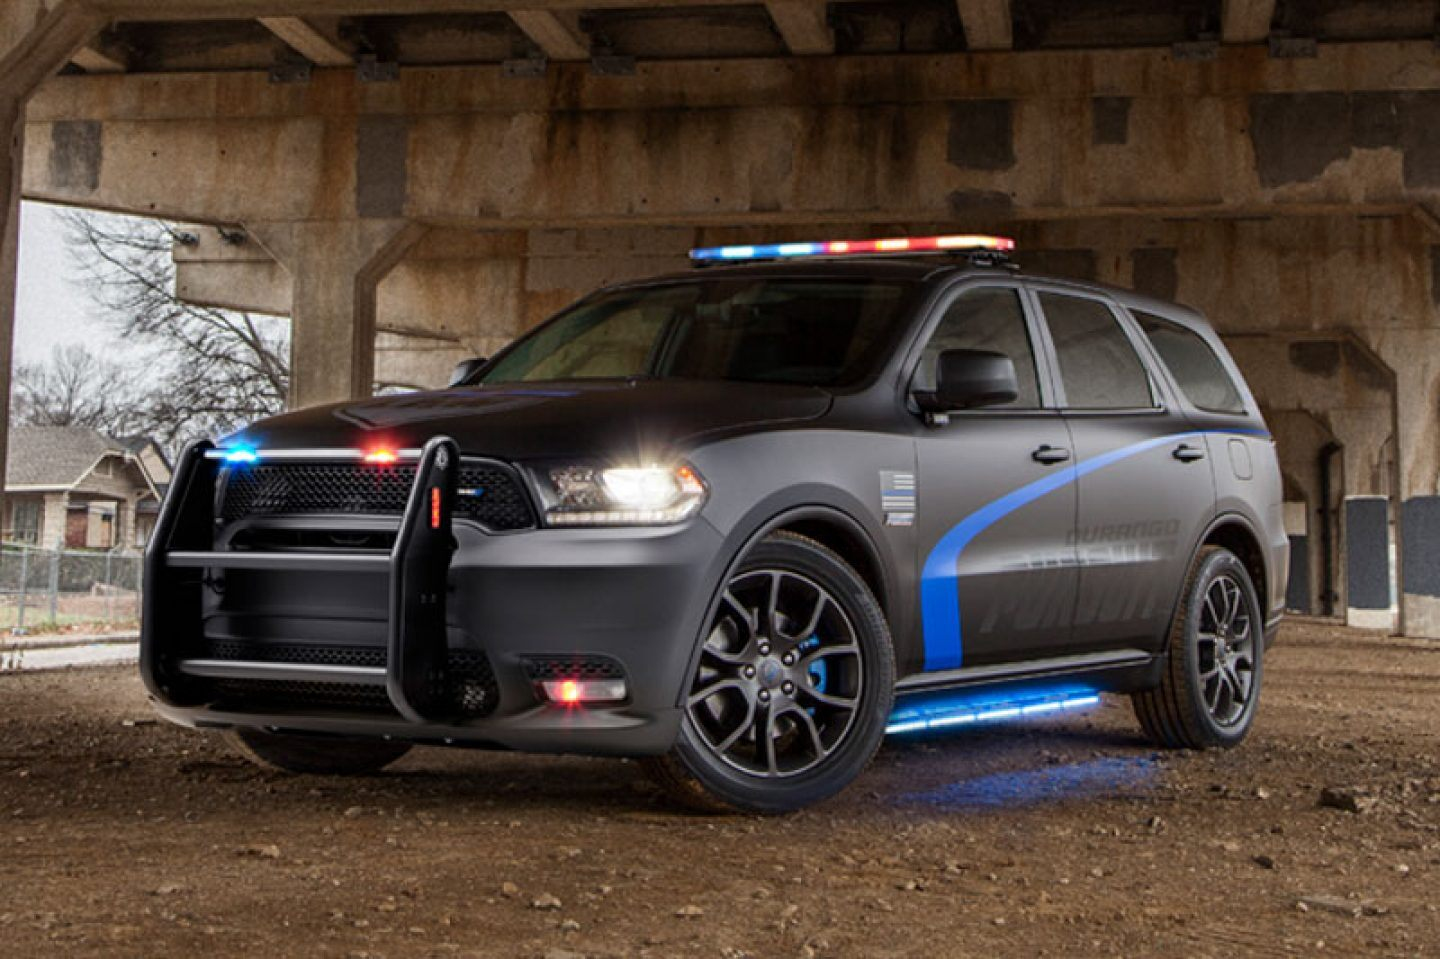 2019 Dodge Durango Special Service John Jones Police Pursuit Vehicles Salem In